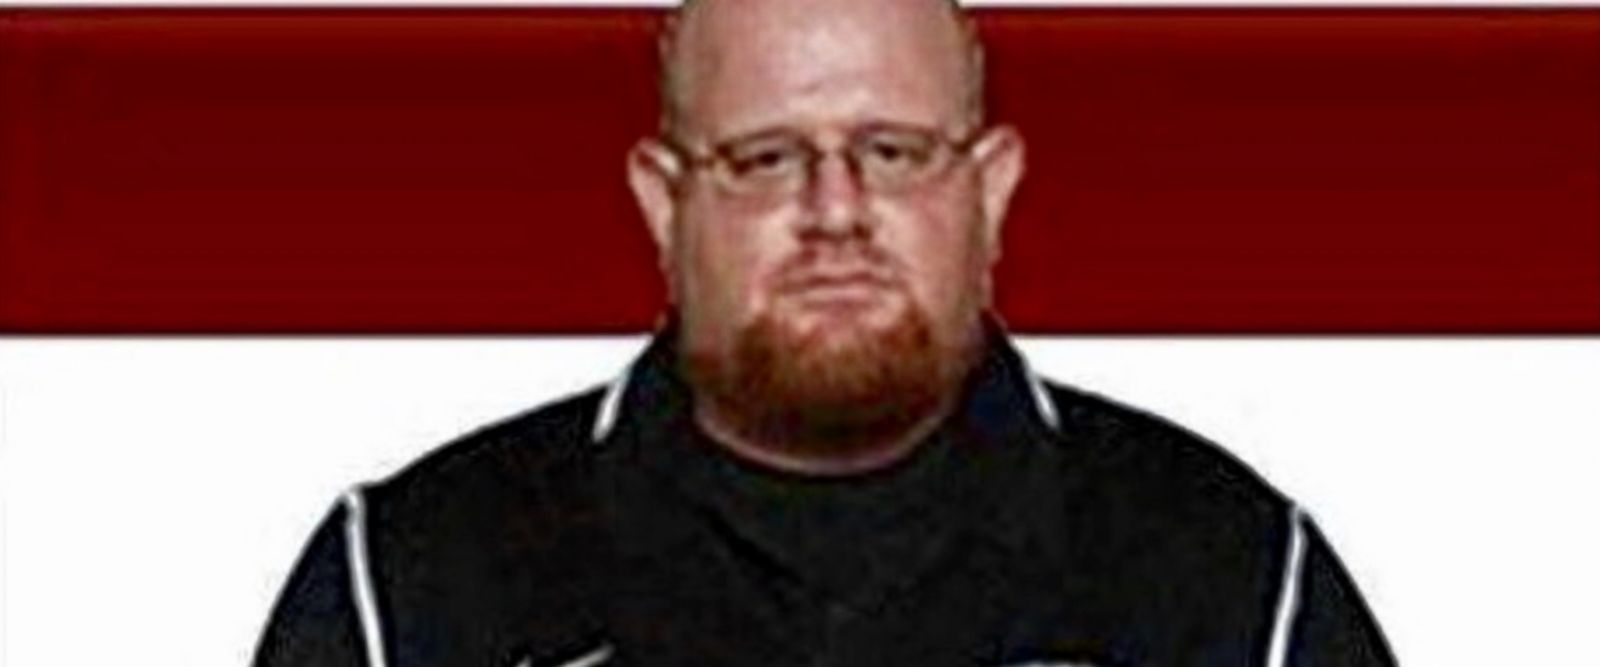 Aaron Feis, 37, a father and husband, was one of the 17 people killed in the Valentine's Day massacre at Marjory Stoneman Douglas High School in Florida.